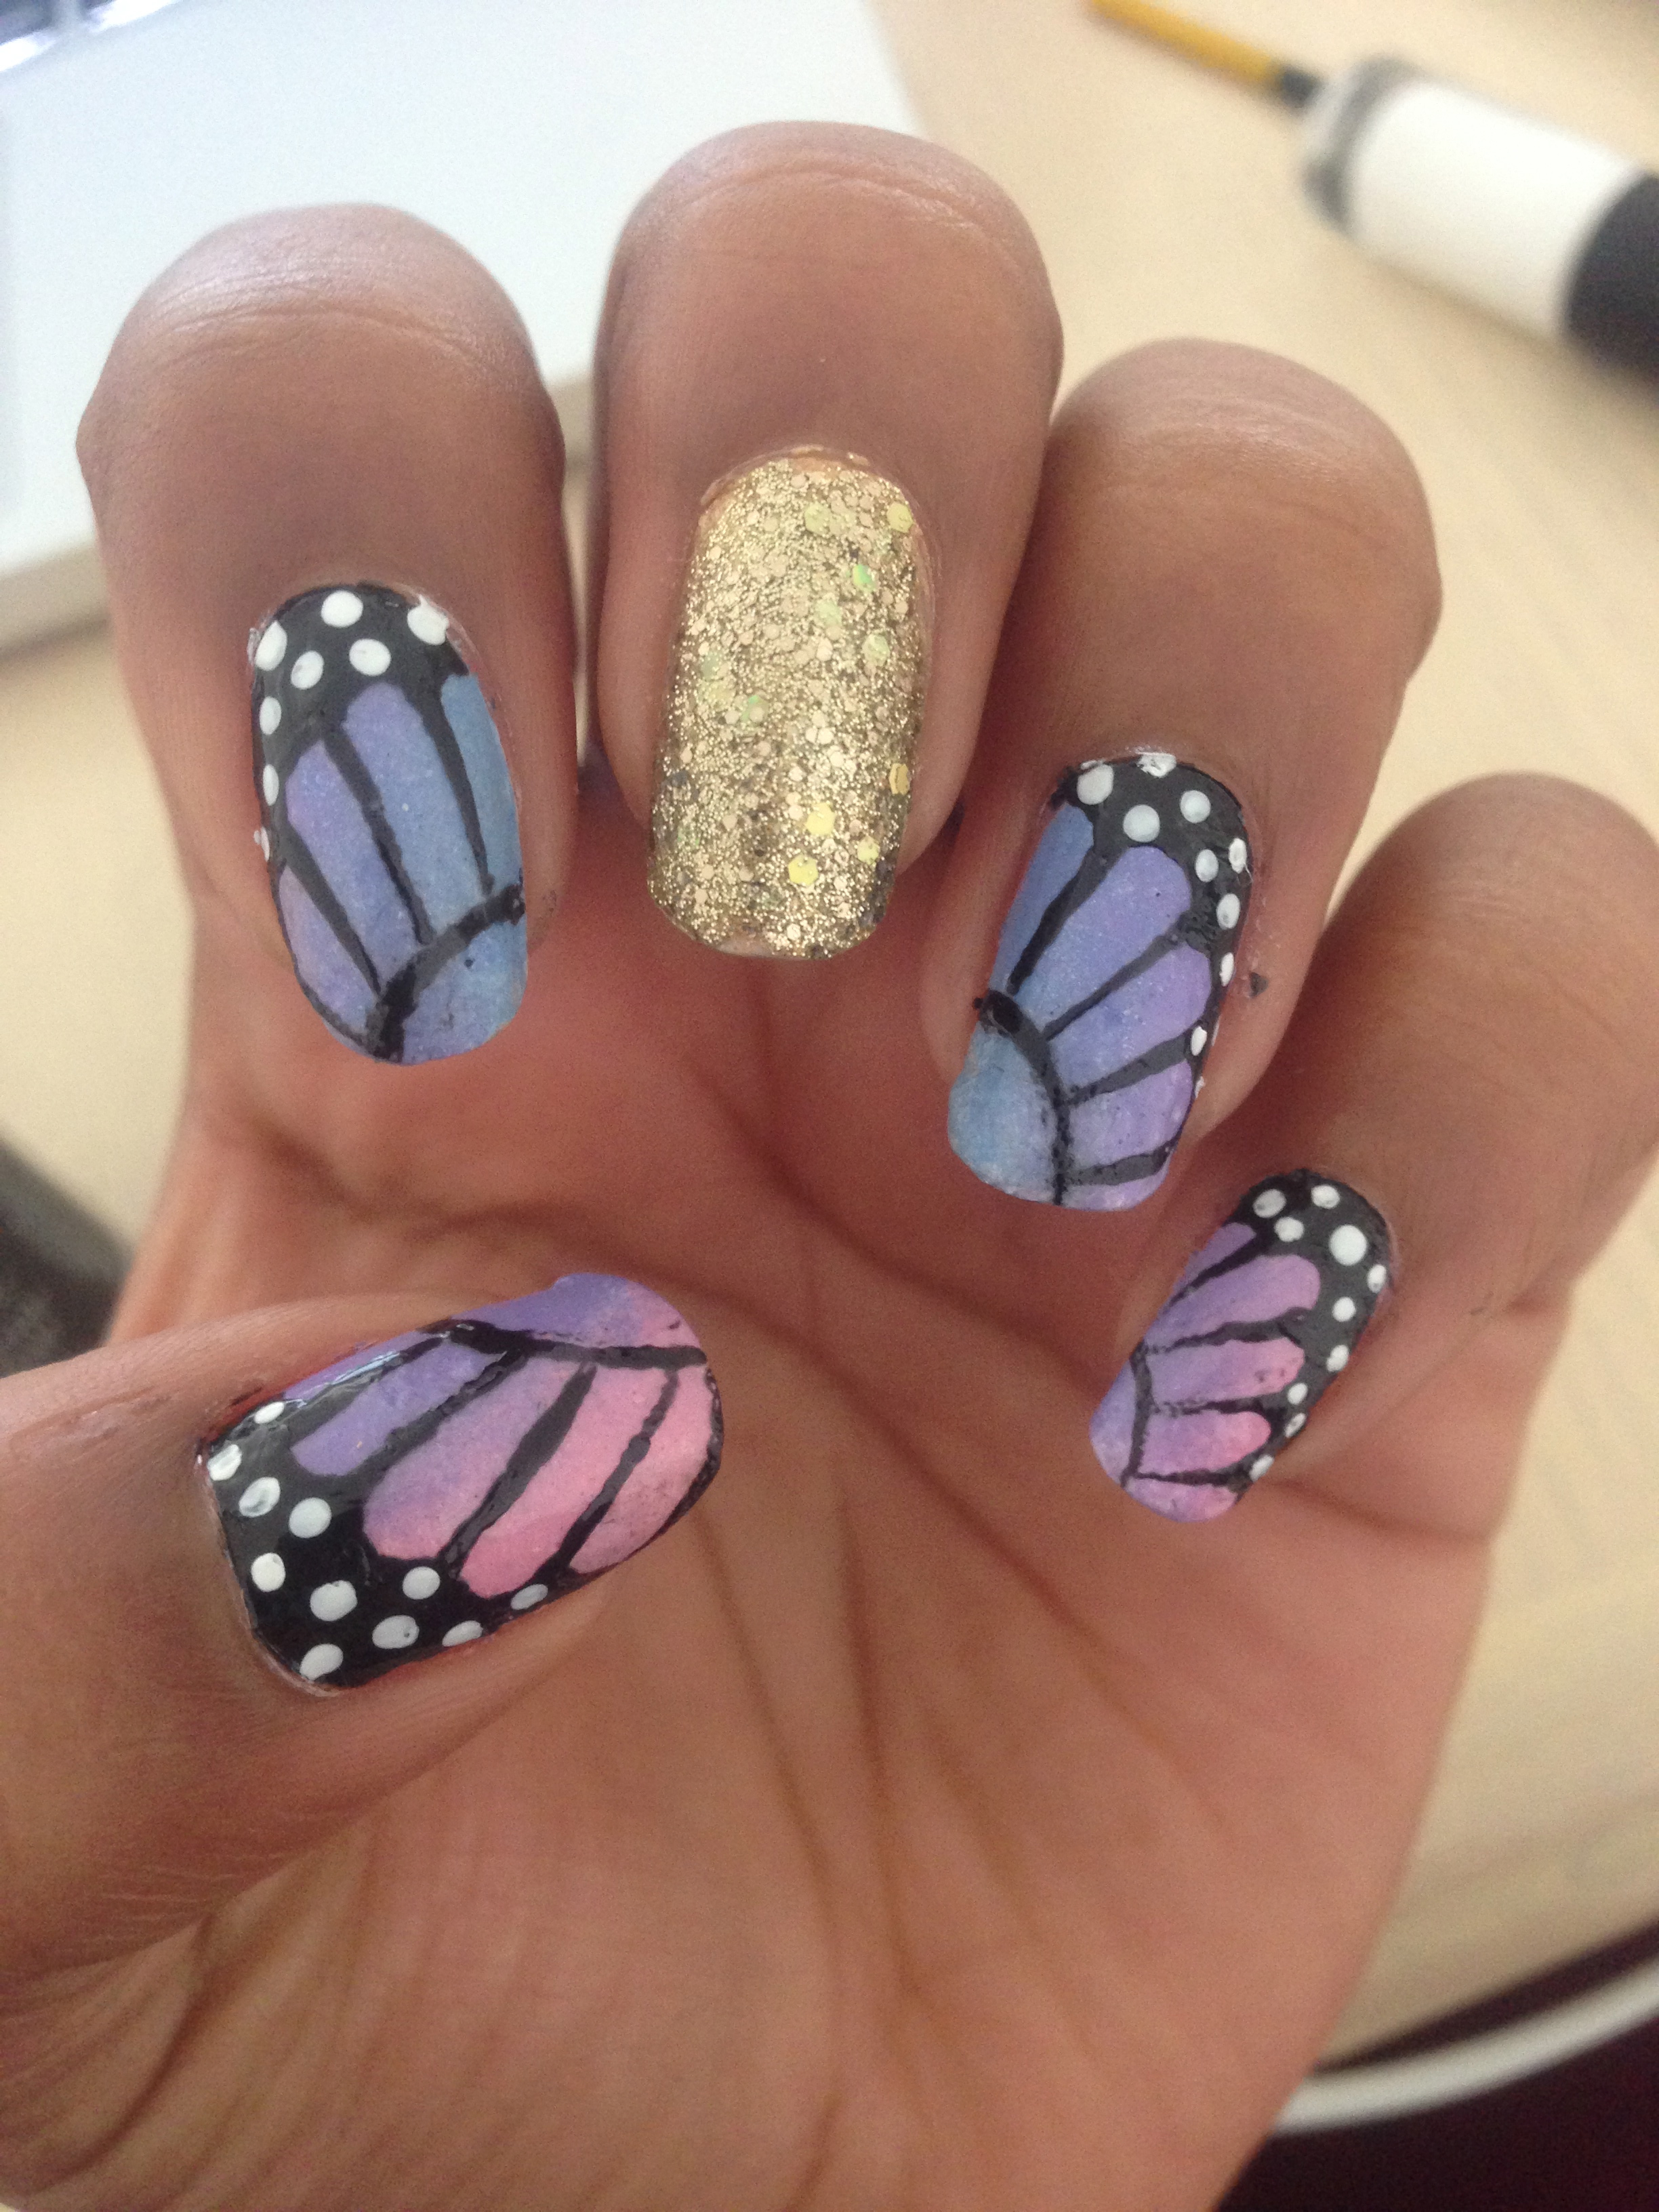 Nail Art Tutorial: Monarch Butterfly Wings |